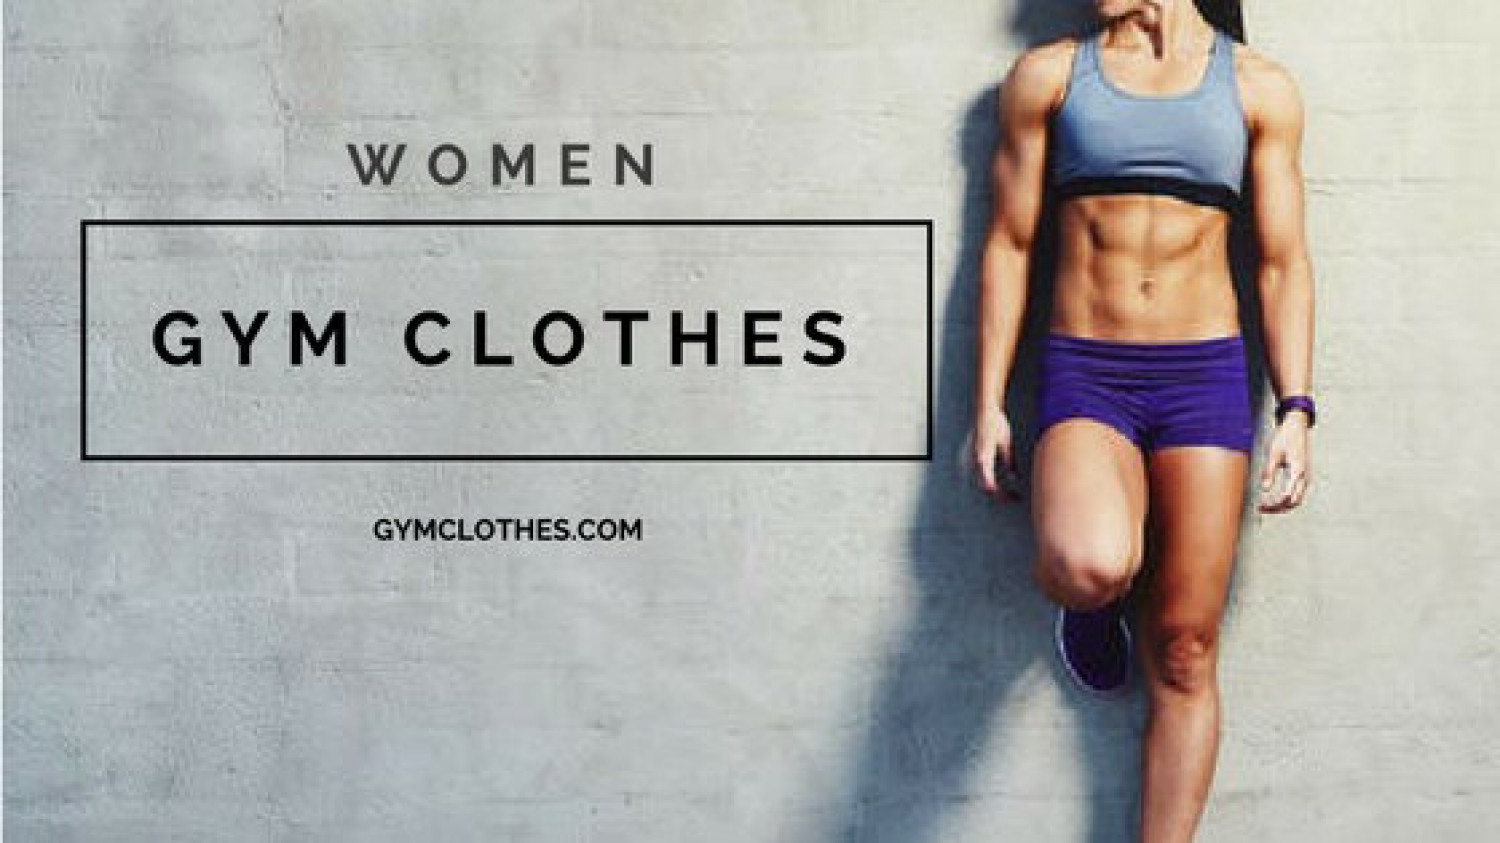 Enhance Your Performance With Stylish Womens Gym Apparel From Gym Clothes  Infographic